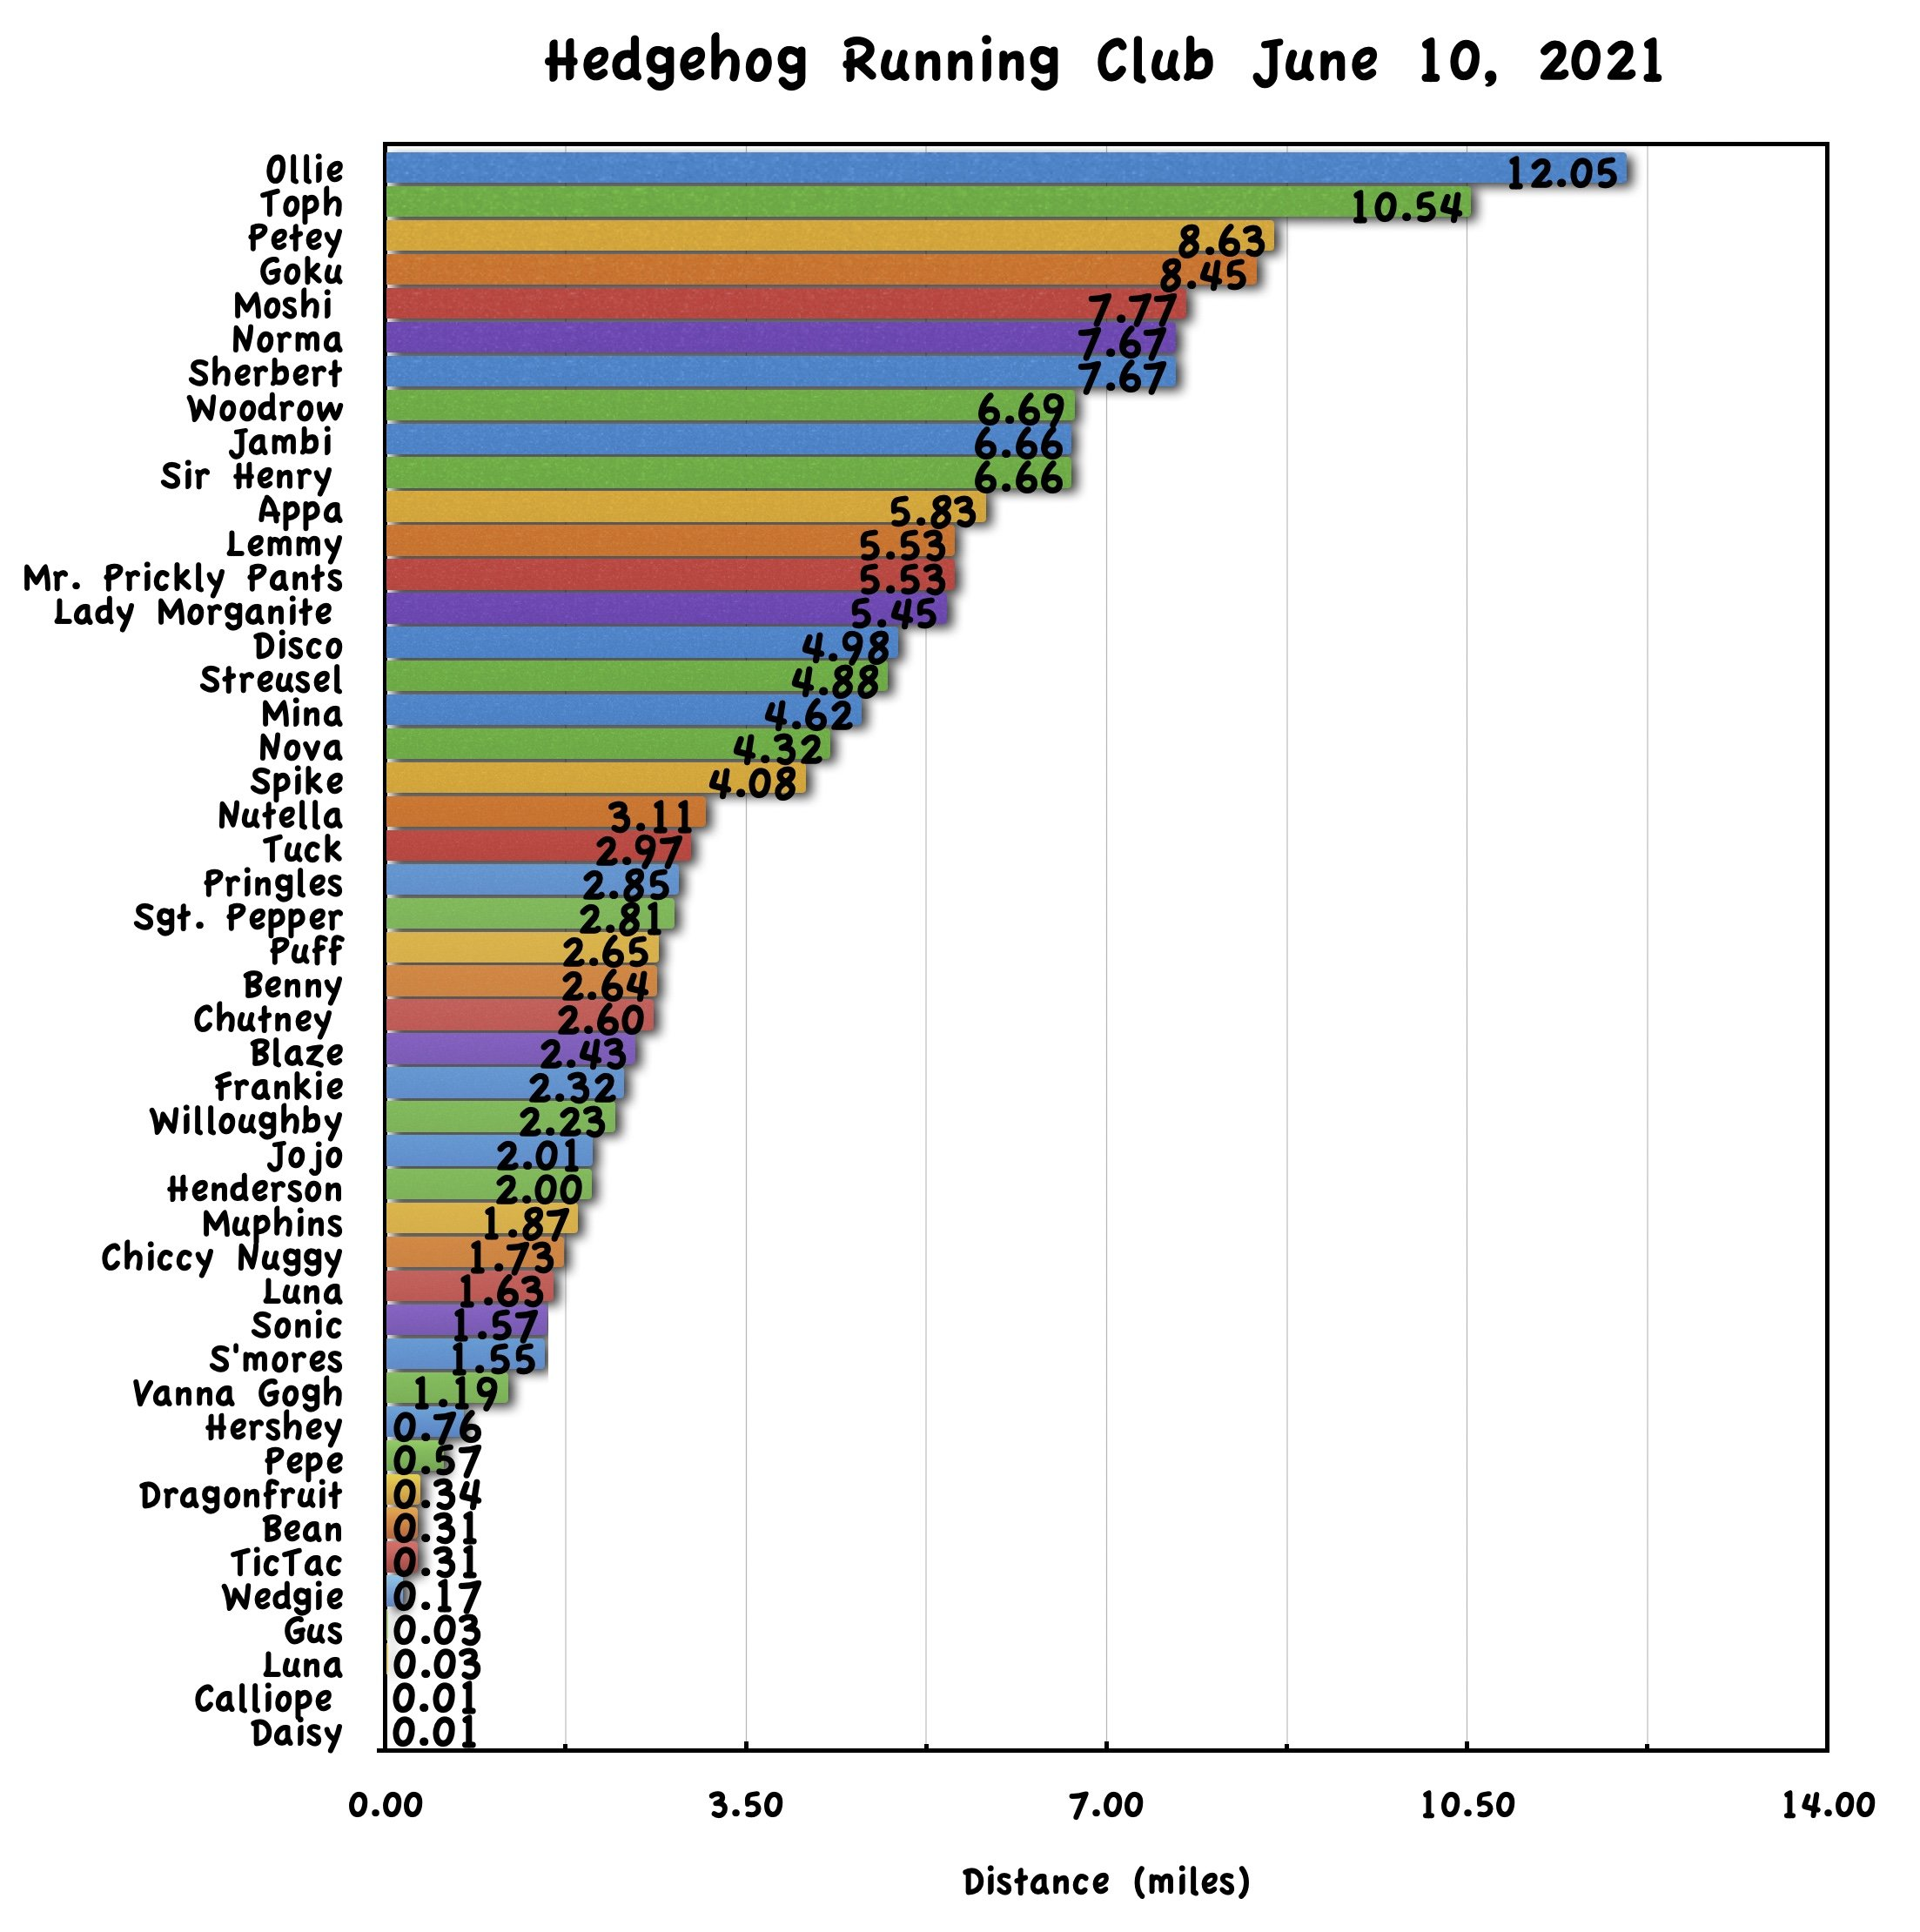 Hedgehog Running Club Results for June 10th